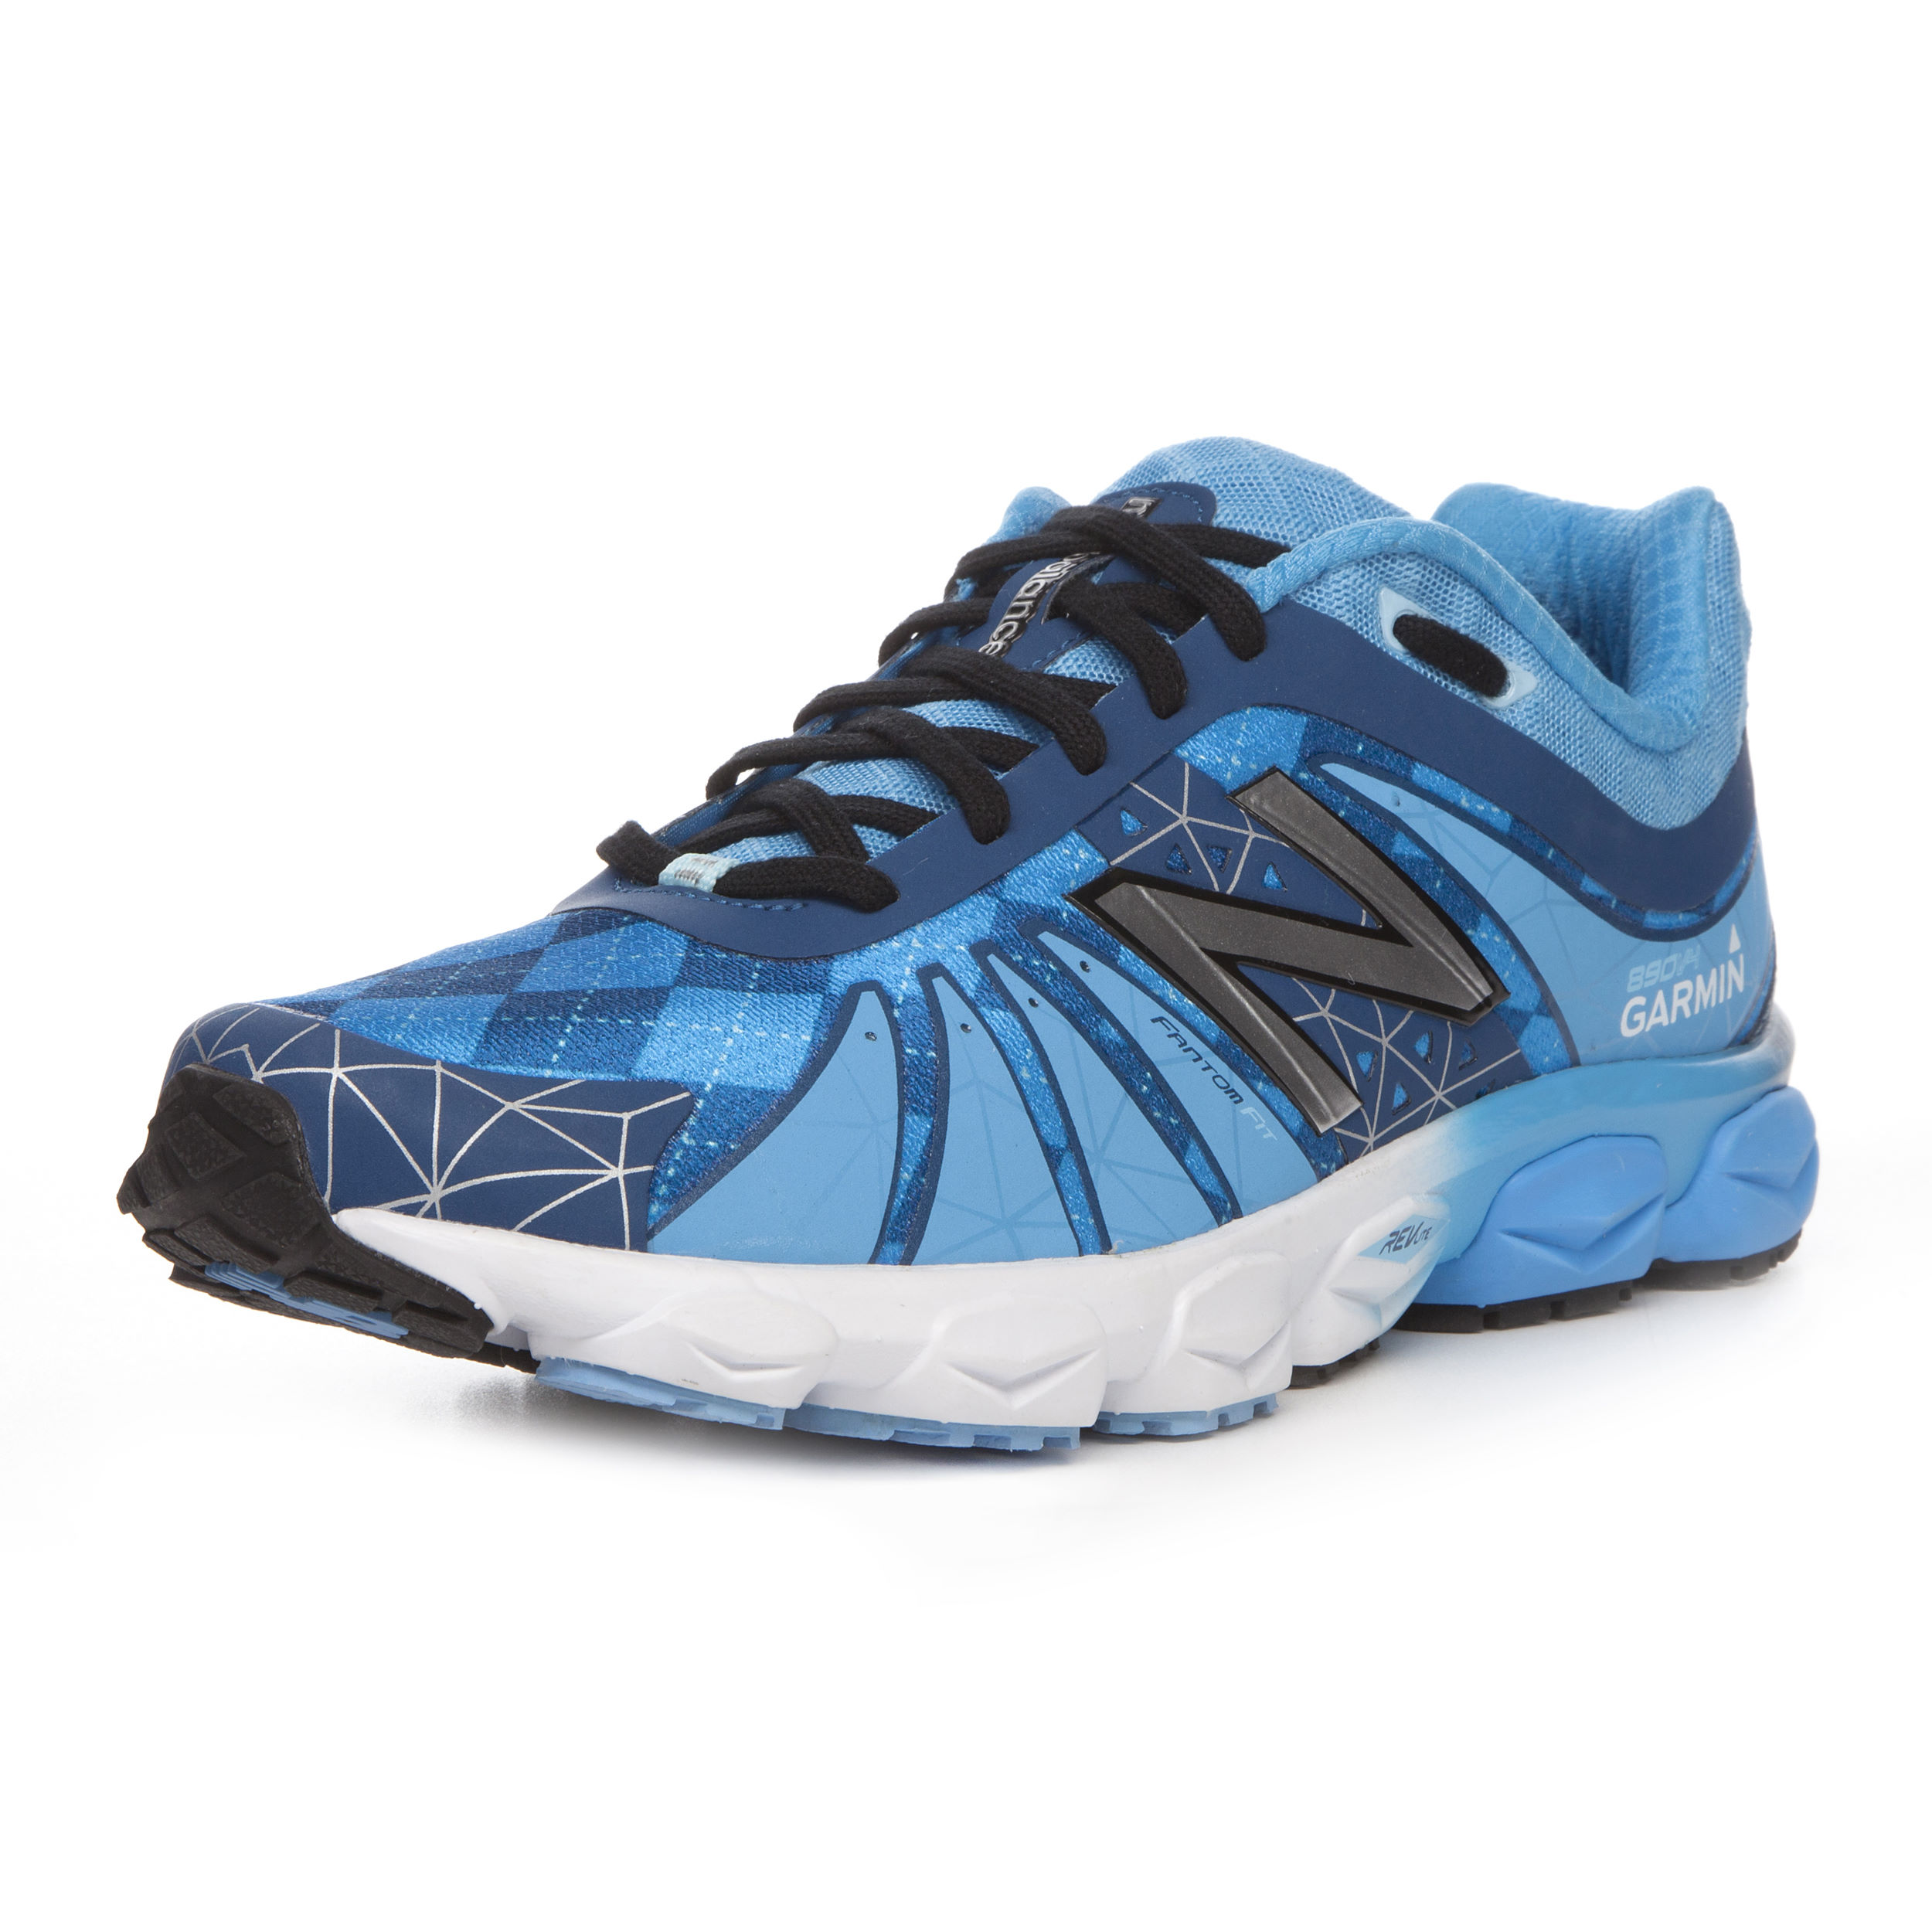 new balance 890v4 womens limited edition